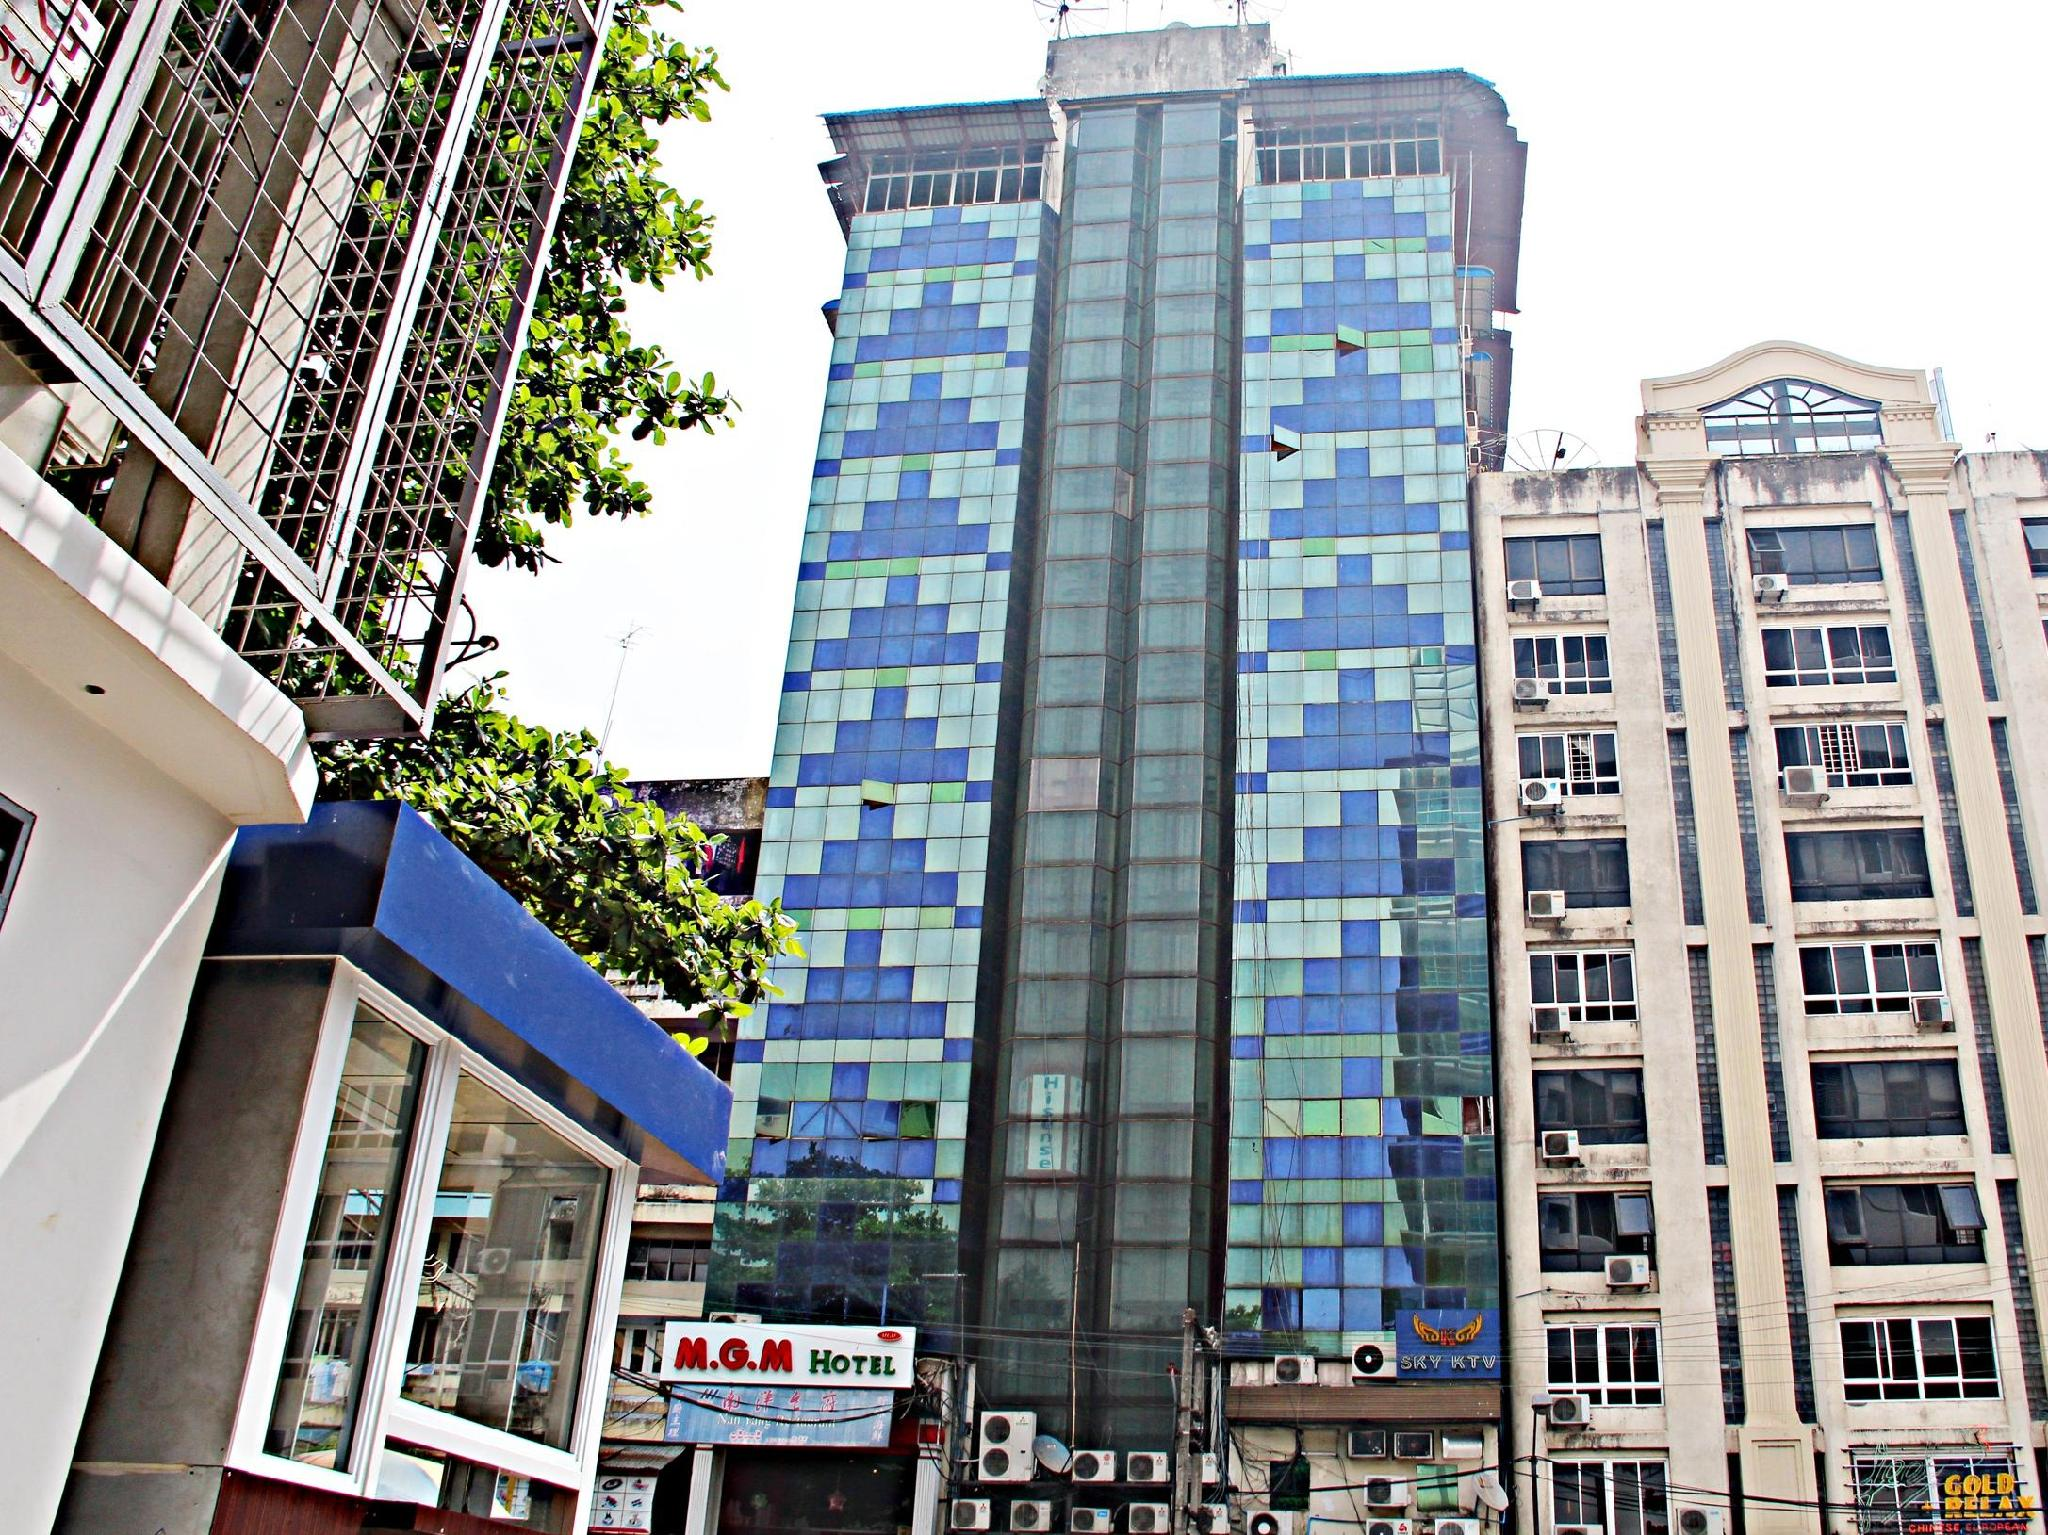 M.G.M Hotel - Hotels and Accommodation in Myanmar, Asia